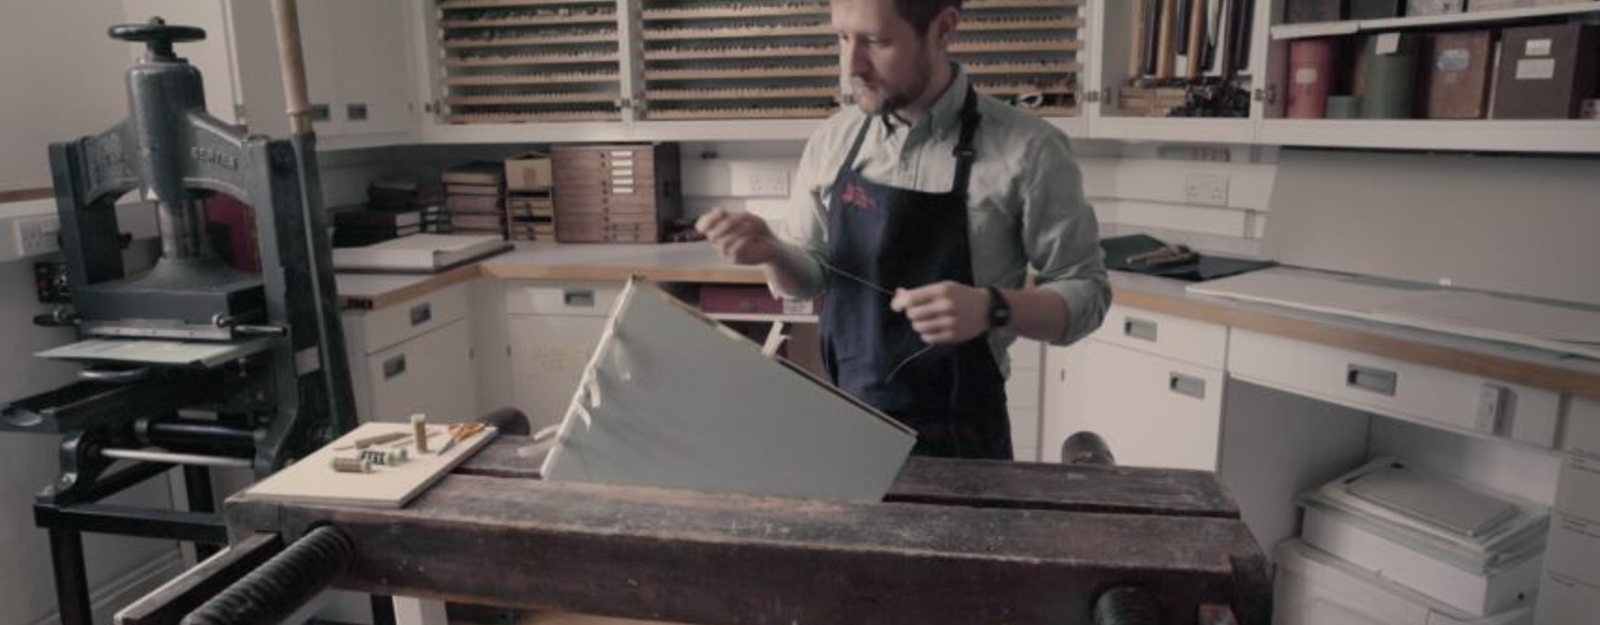 Royal Bindery working on facsimile